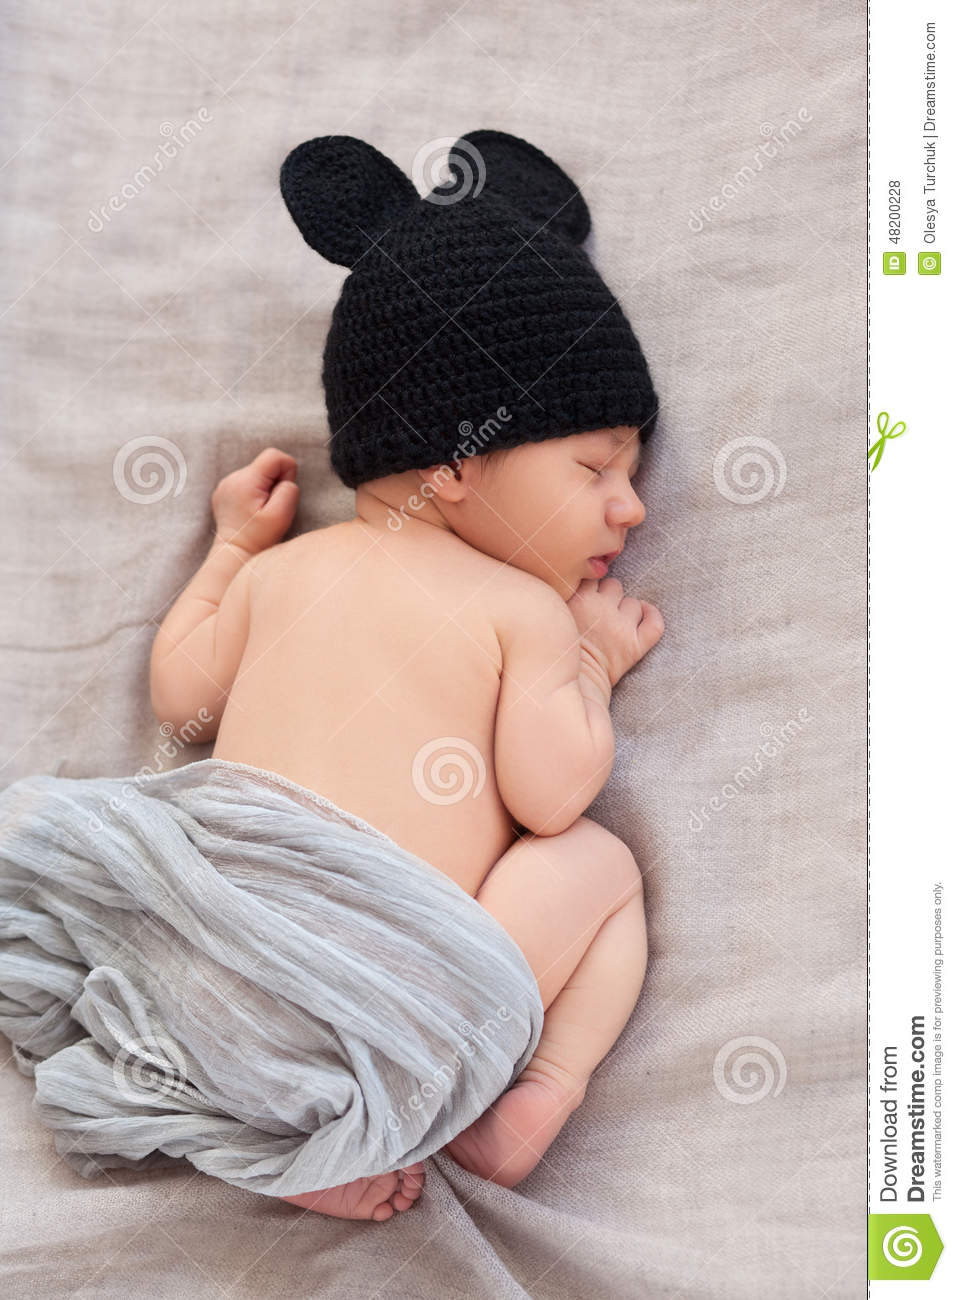 Newborn baby in black mouse hat